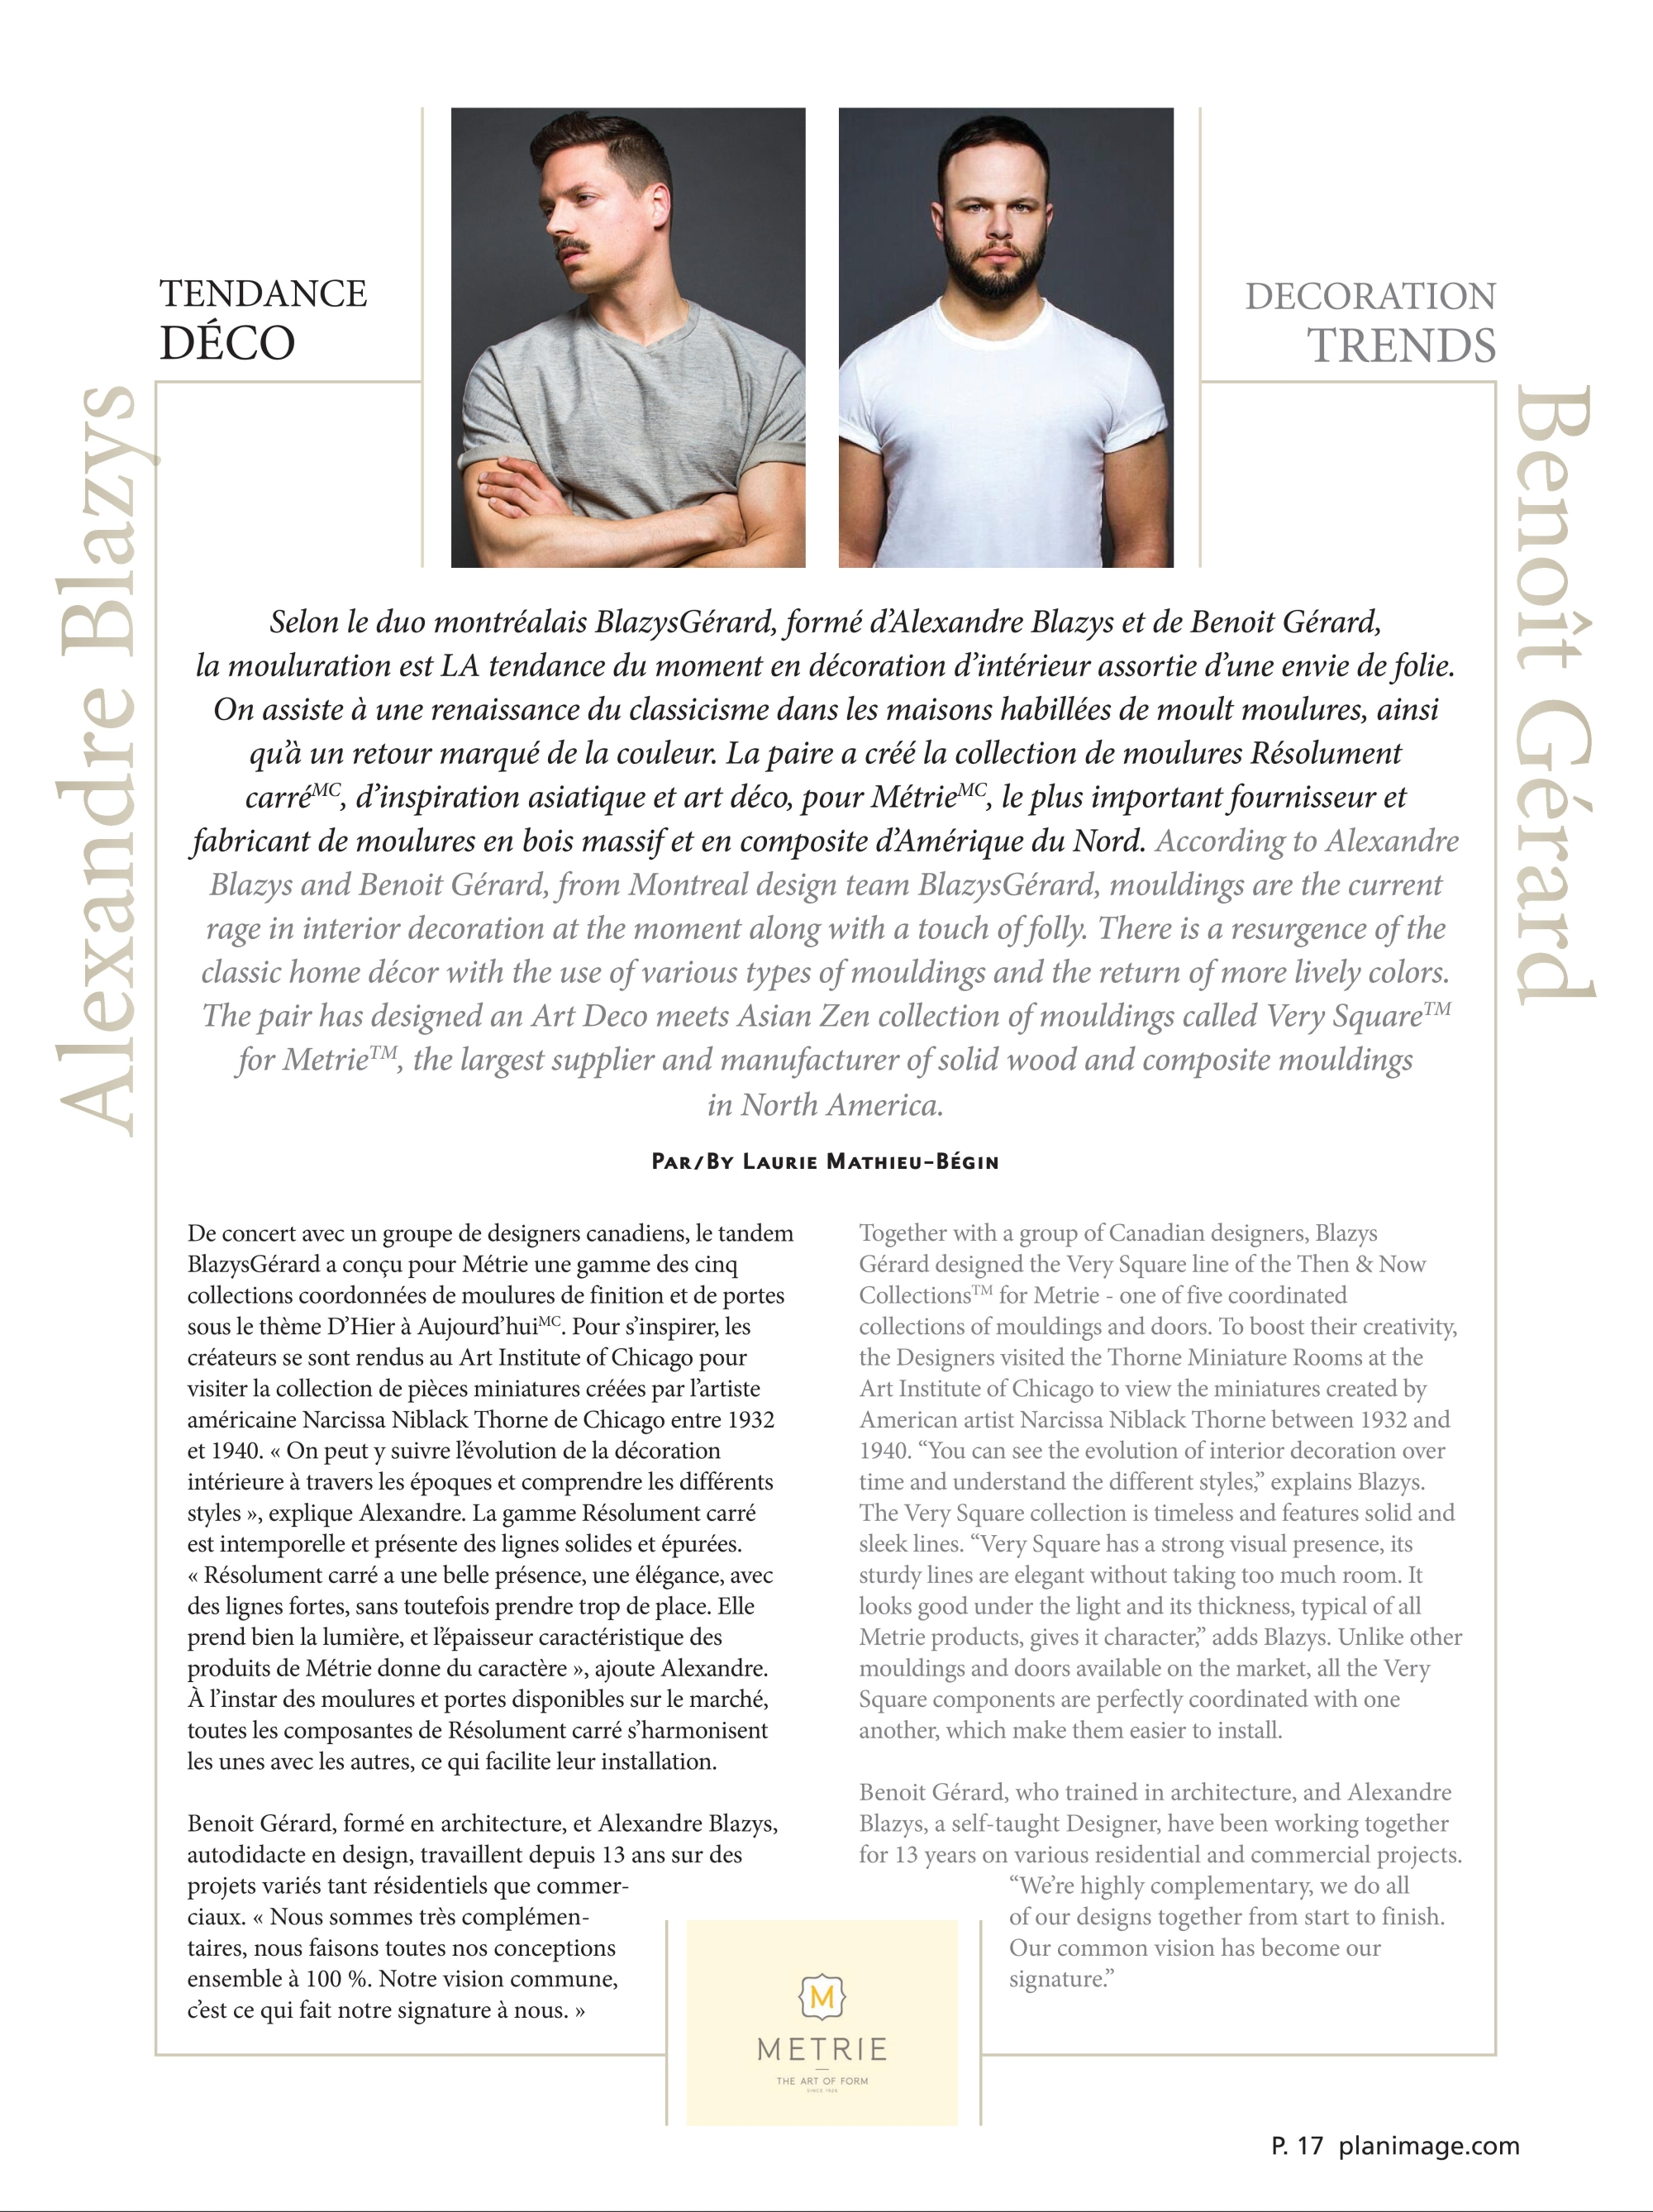 Alexandre Blazys and Benoit Gérard, from Montreal design team BlazysGérard talk their inspiration behind the Metrie Very Square Finishing Collections. Source: Plan Image